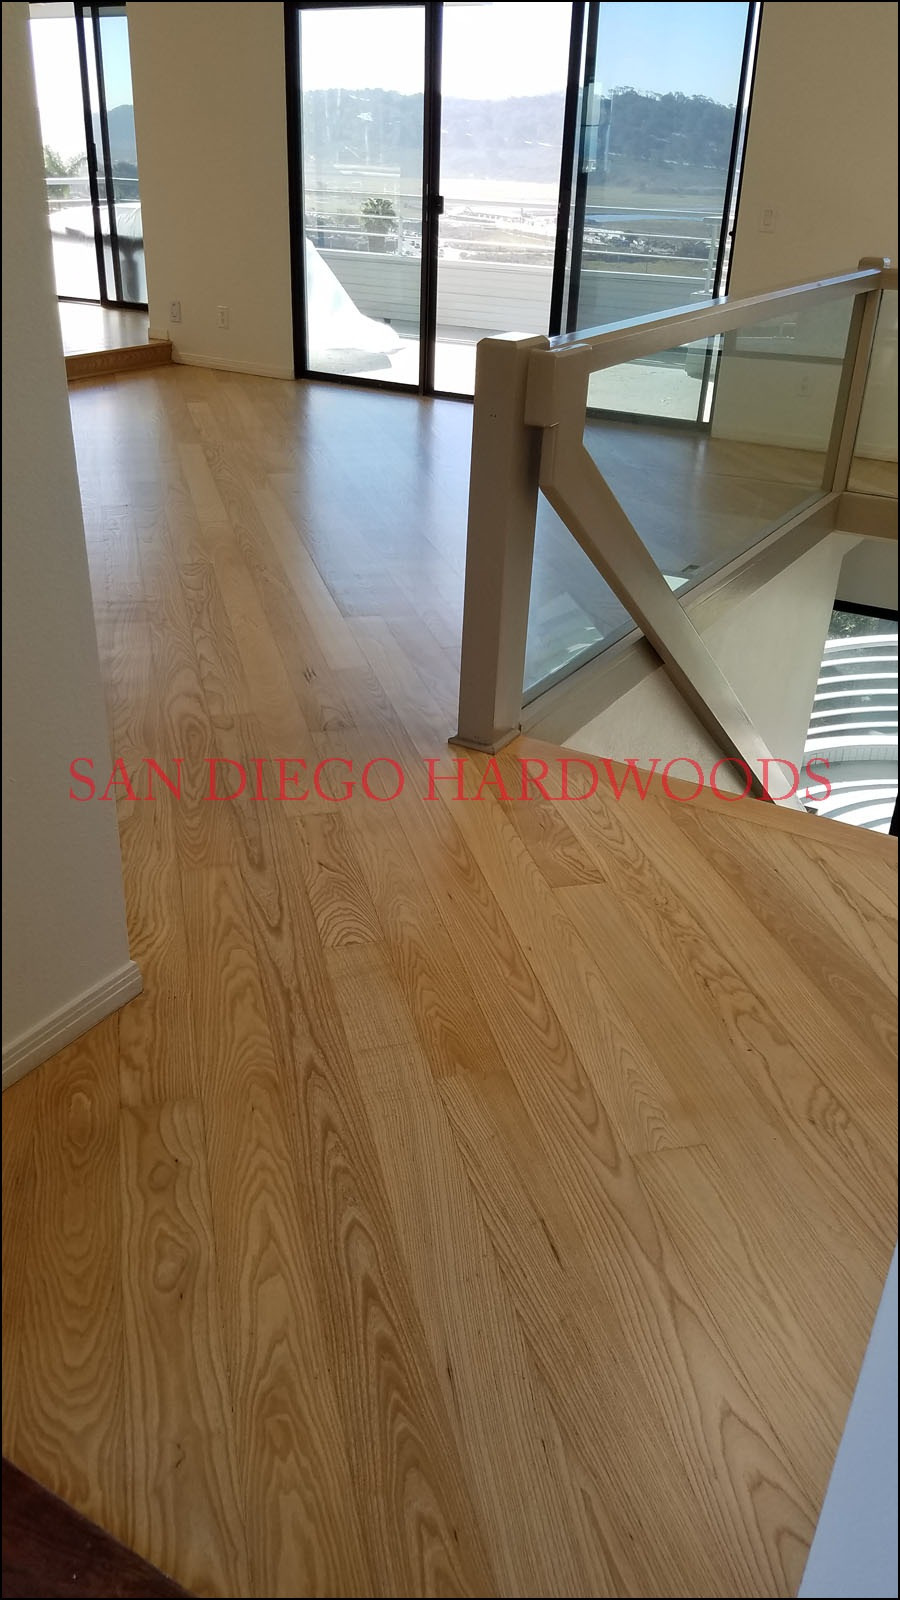 hardwood floor restoration of best place flooring ideas inside best place to buy laminate flooring online san diego hardwood floor restoration 858 699 0072 licensed